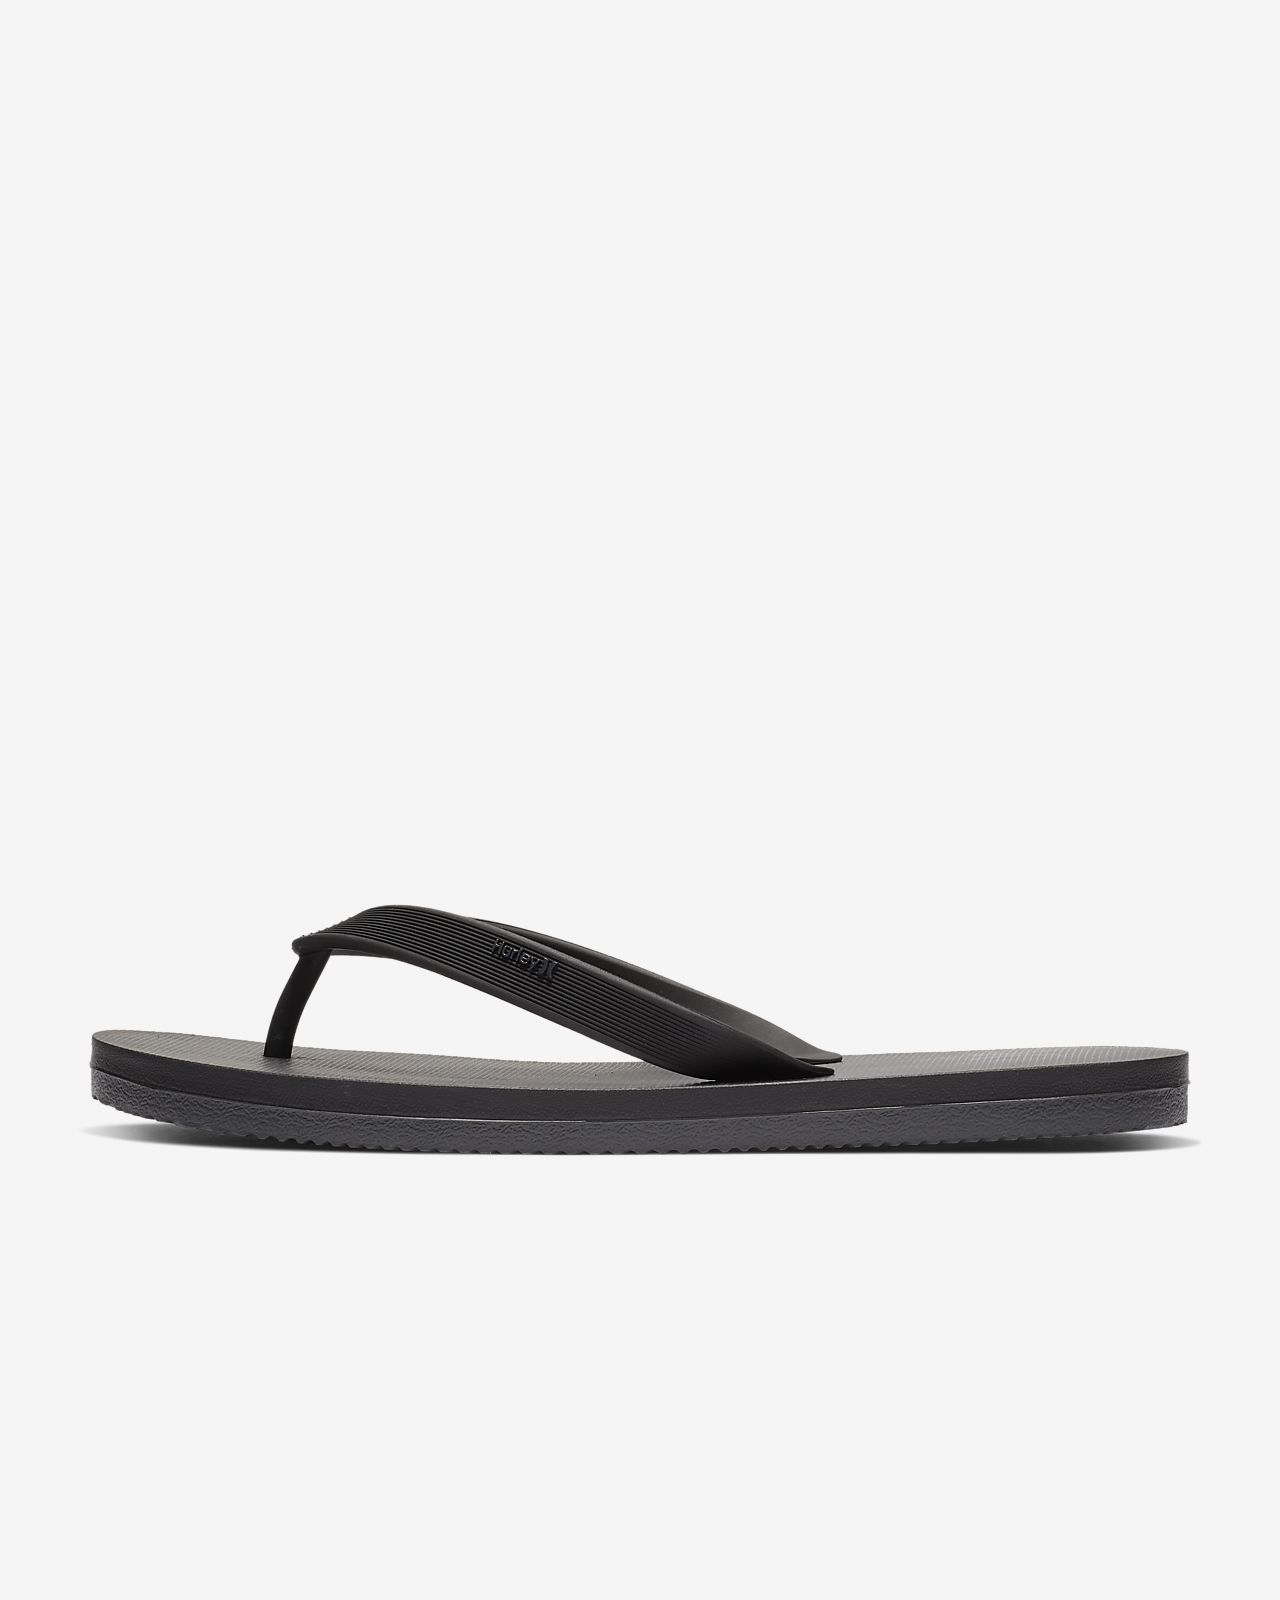 f17dab63f Hurley One And Only Men s Sandal. Nike.com AU